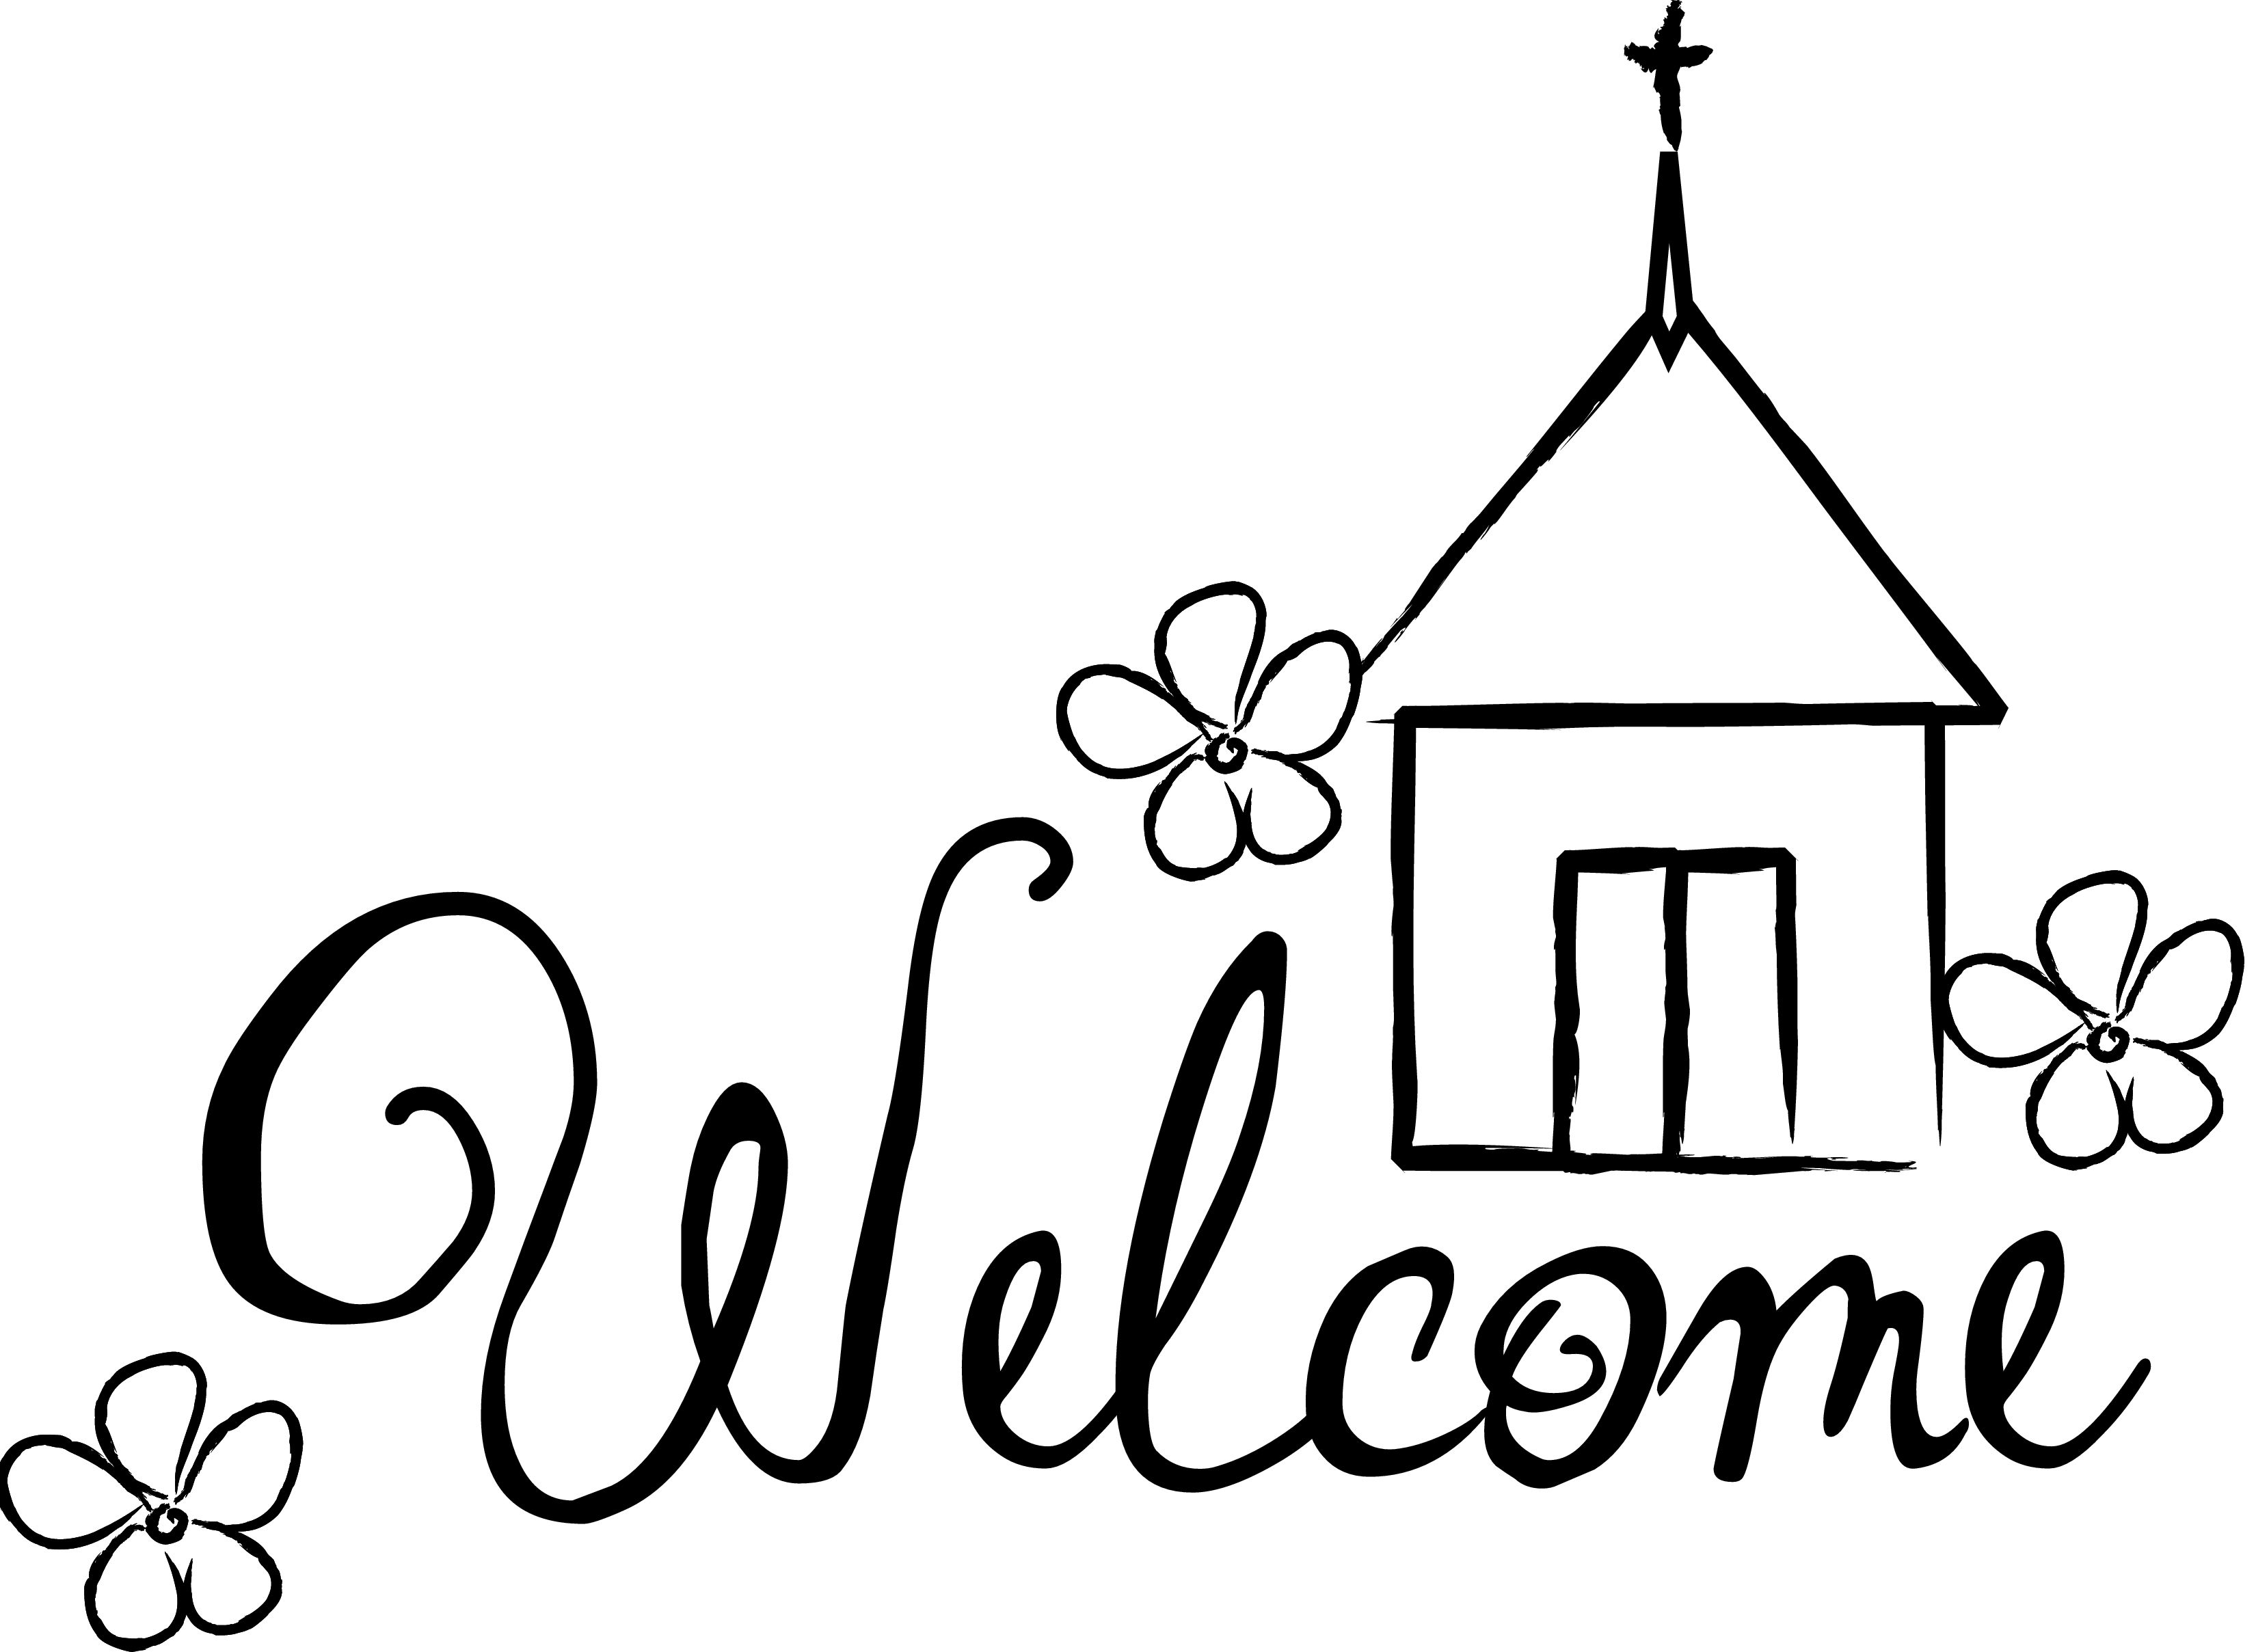 Pastor clipart church minister. Ways to welcome